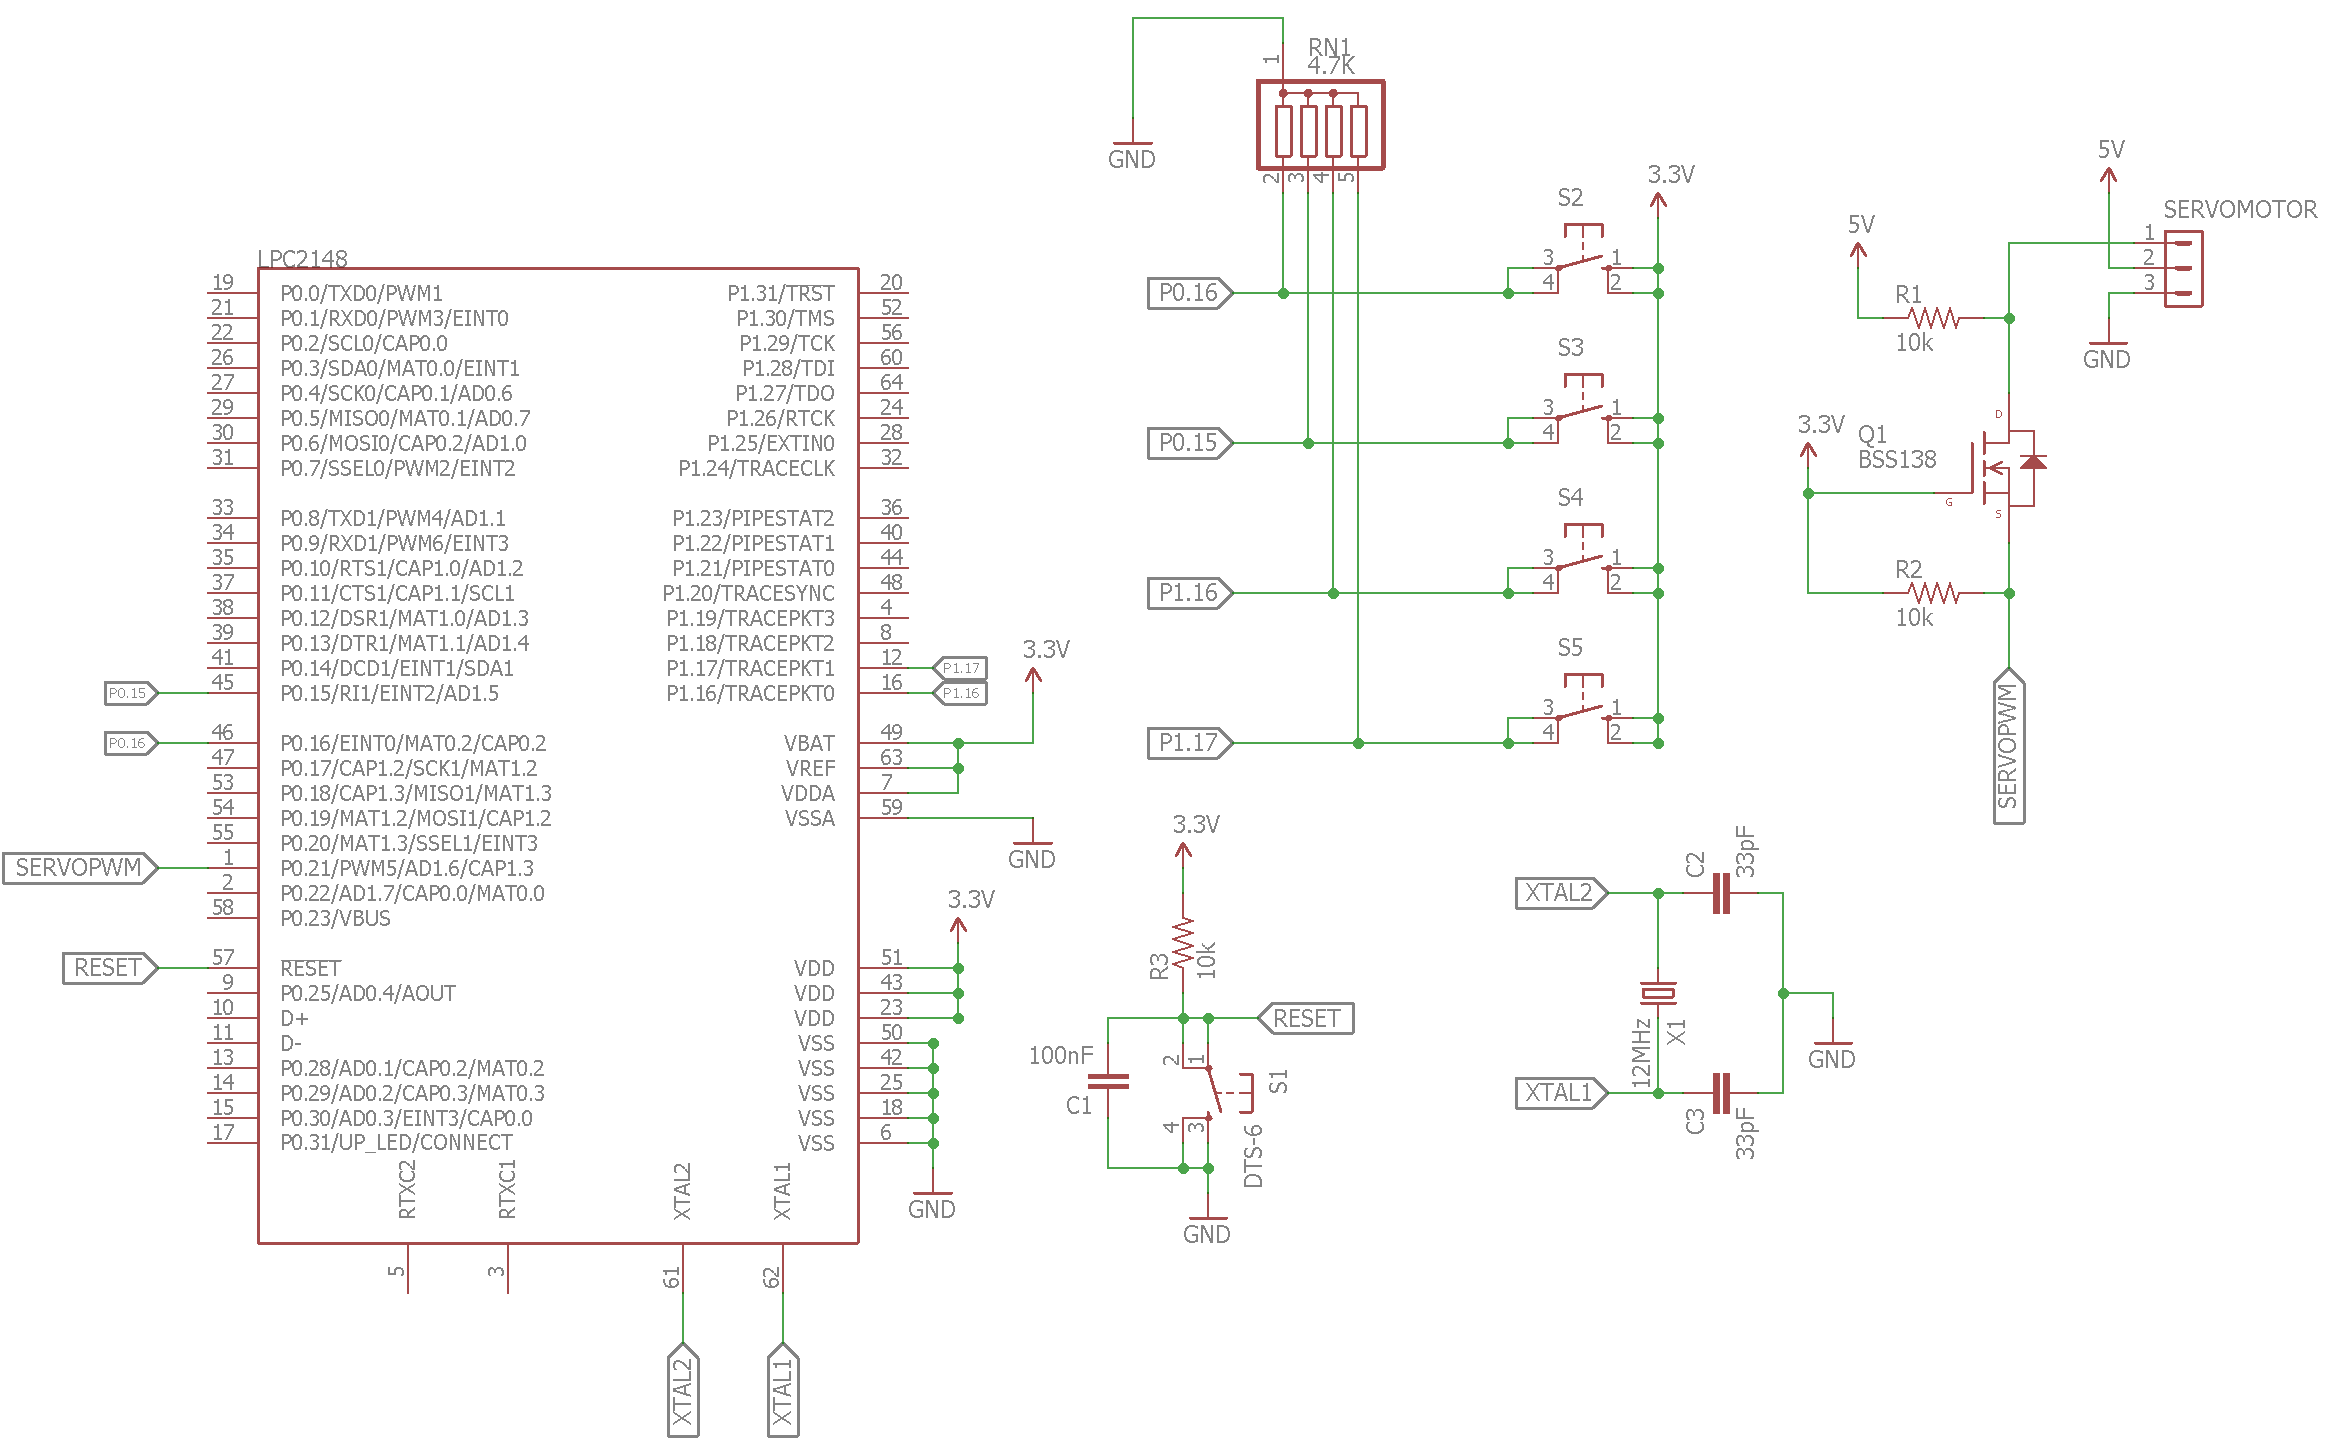 Interfacing A Servo Motor With Arm7 Lpc2148 Diagram Made In Proteus Shows The Pwm Generator Circuit Control